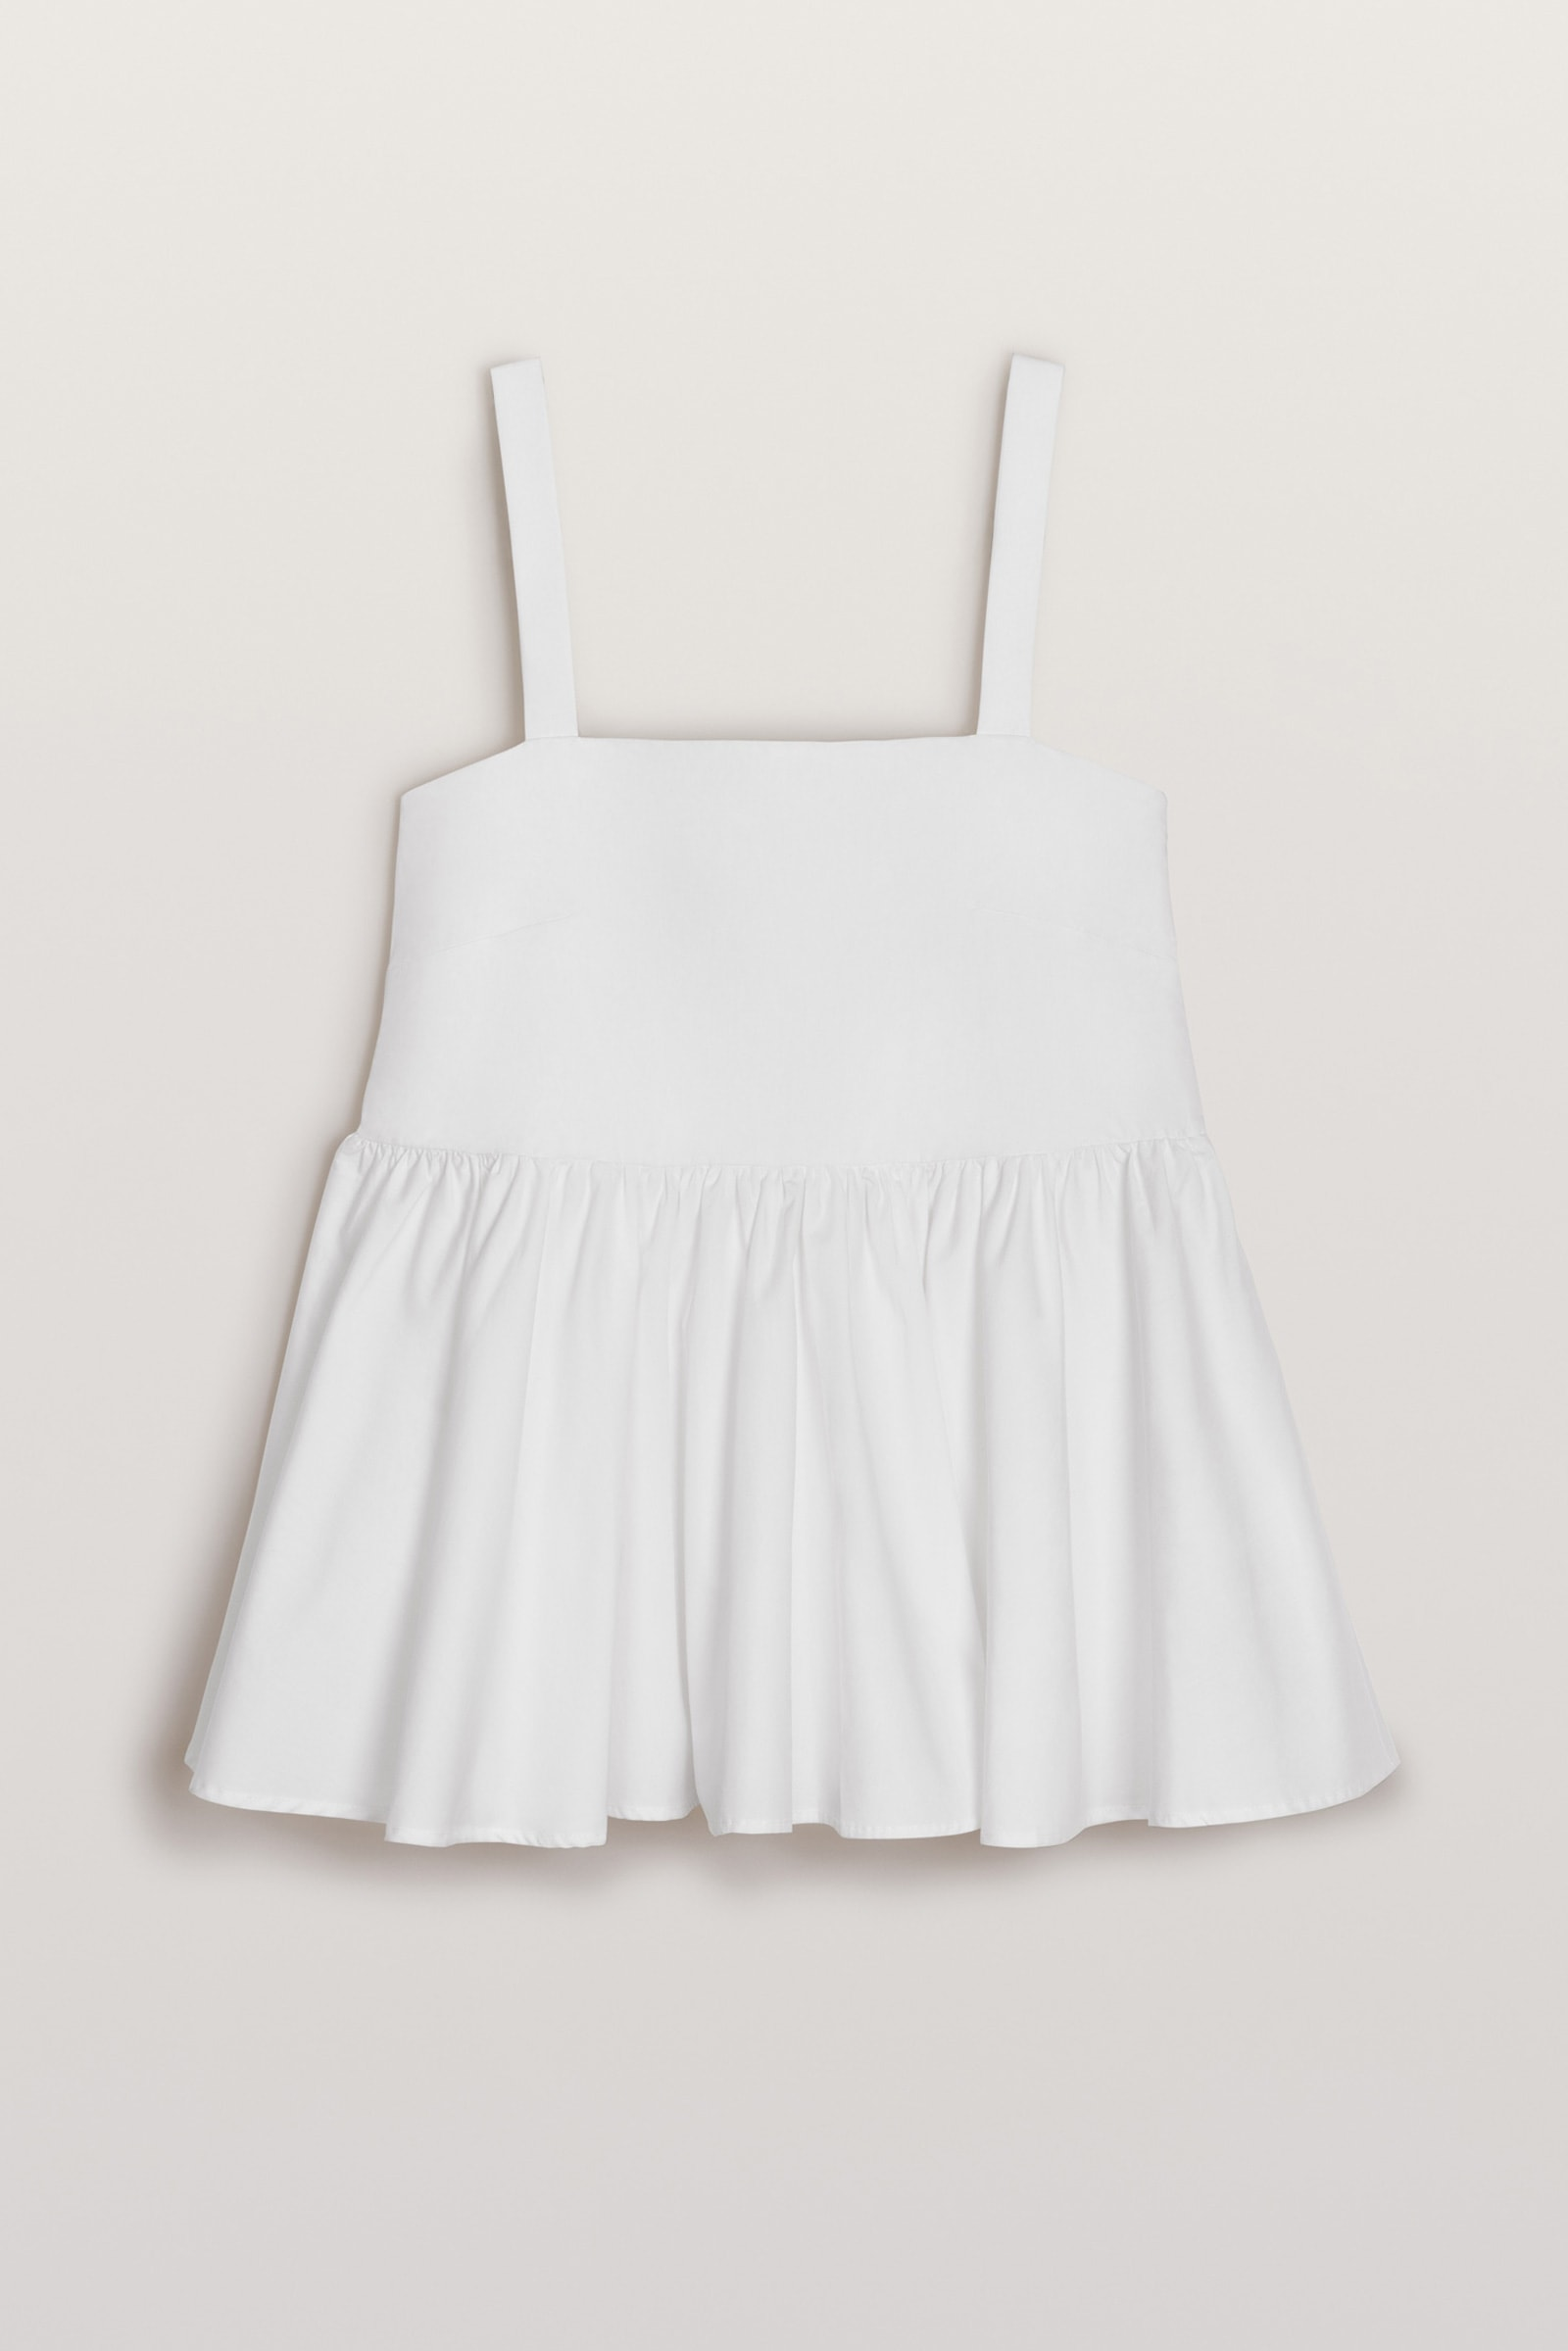 Peplum Sommer Top in Weiß